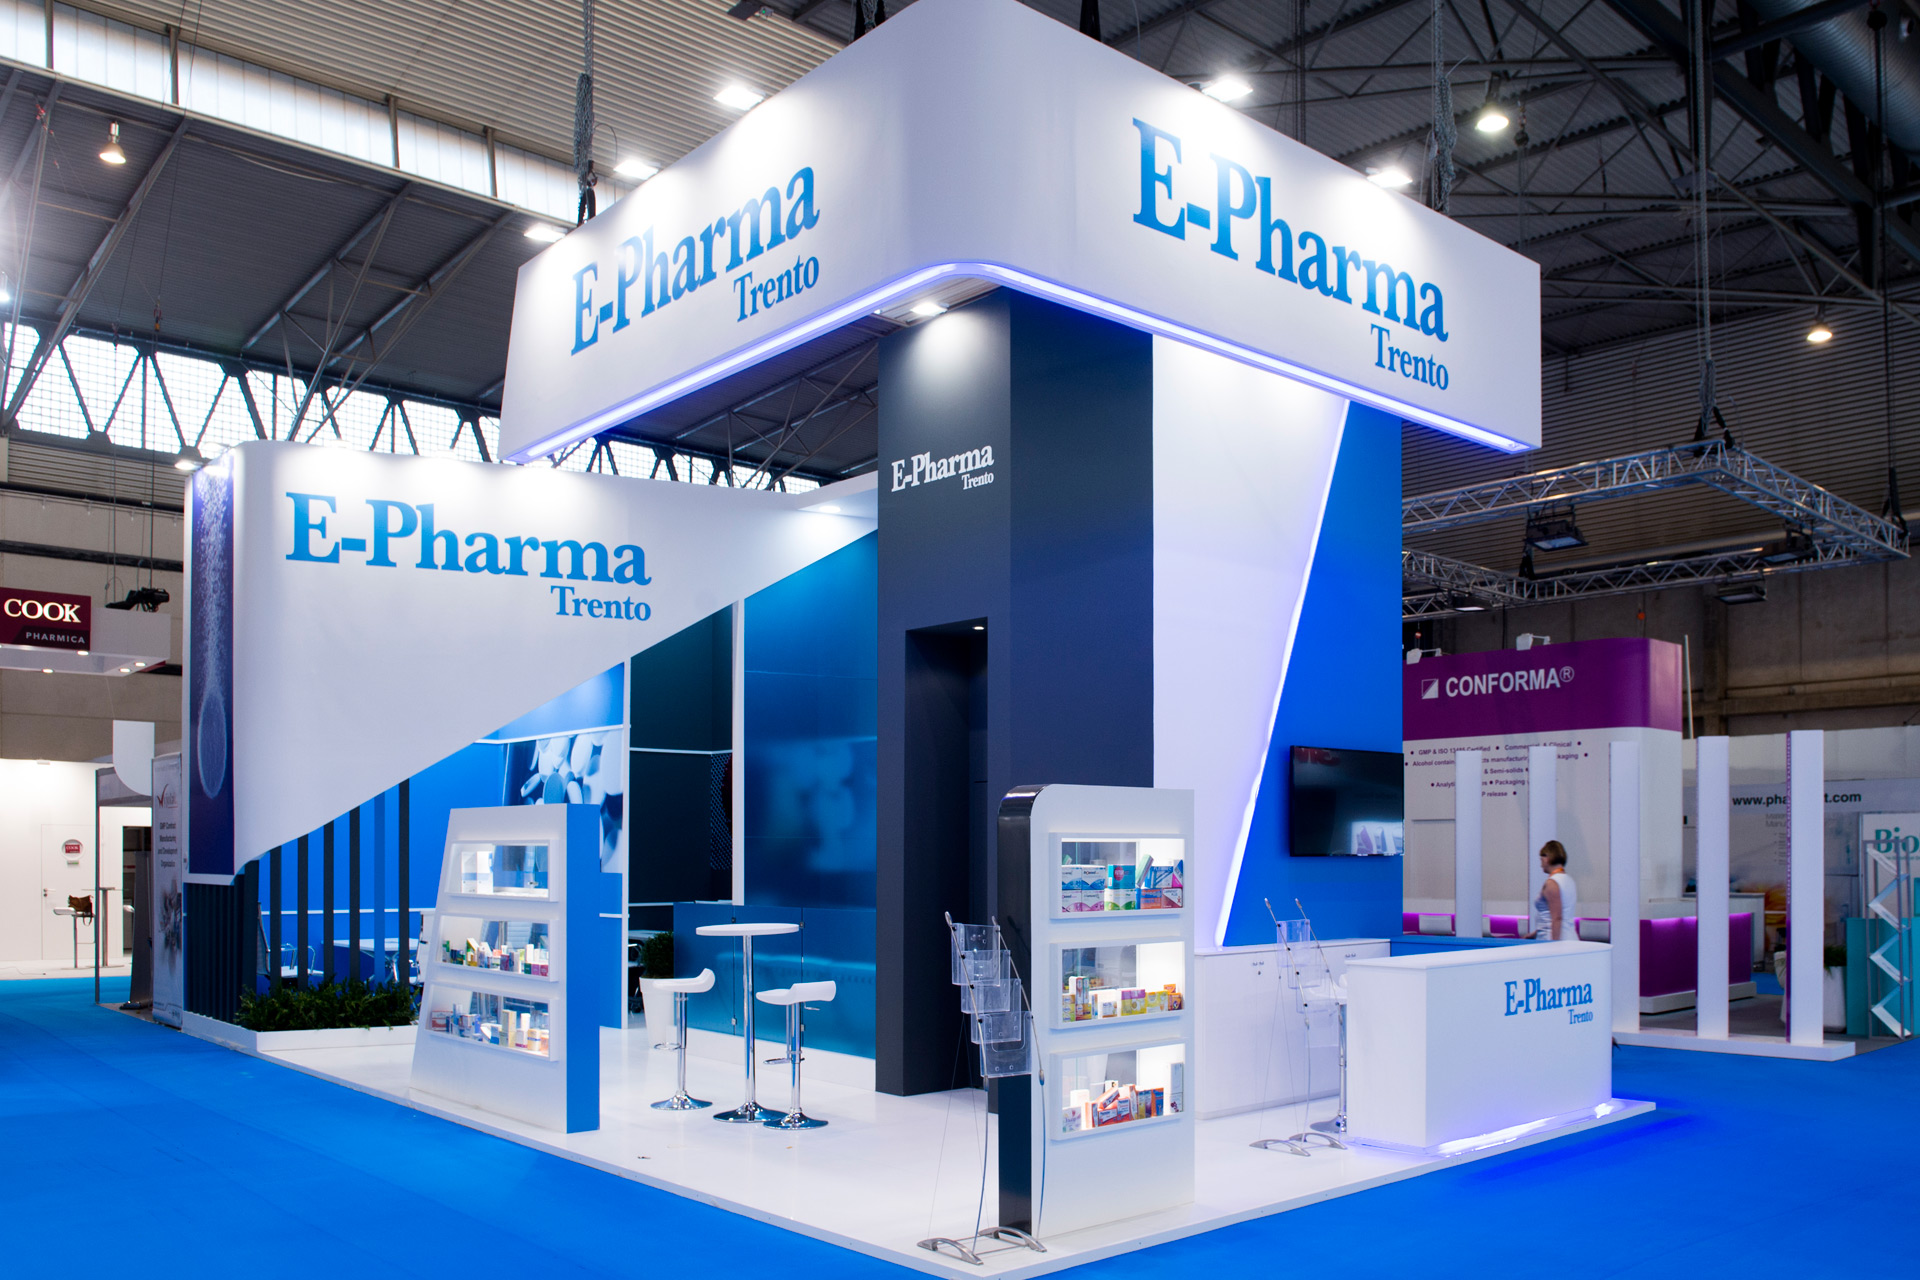 Expo Exhibition Stands Yellow : Epharma cphi barcelona pro expo exhibition stand